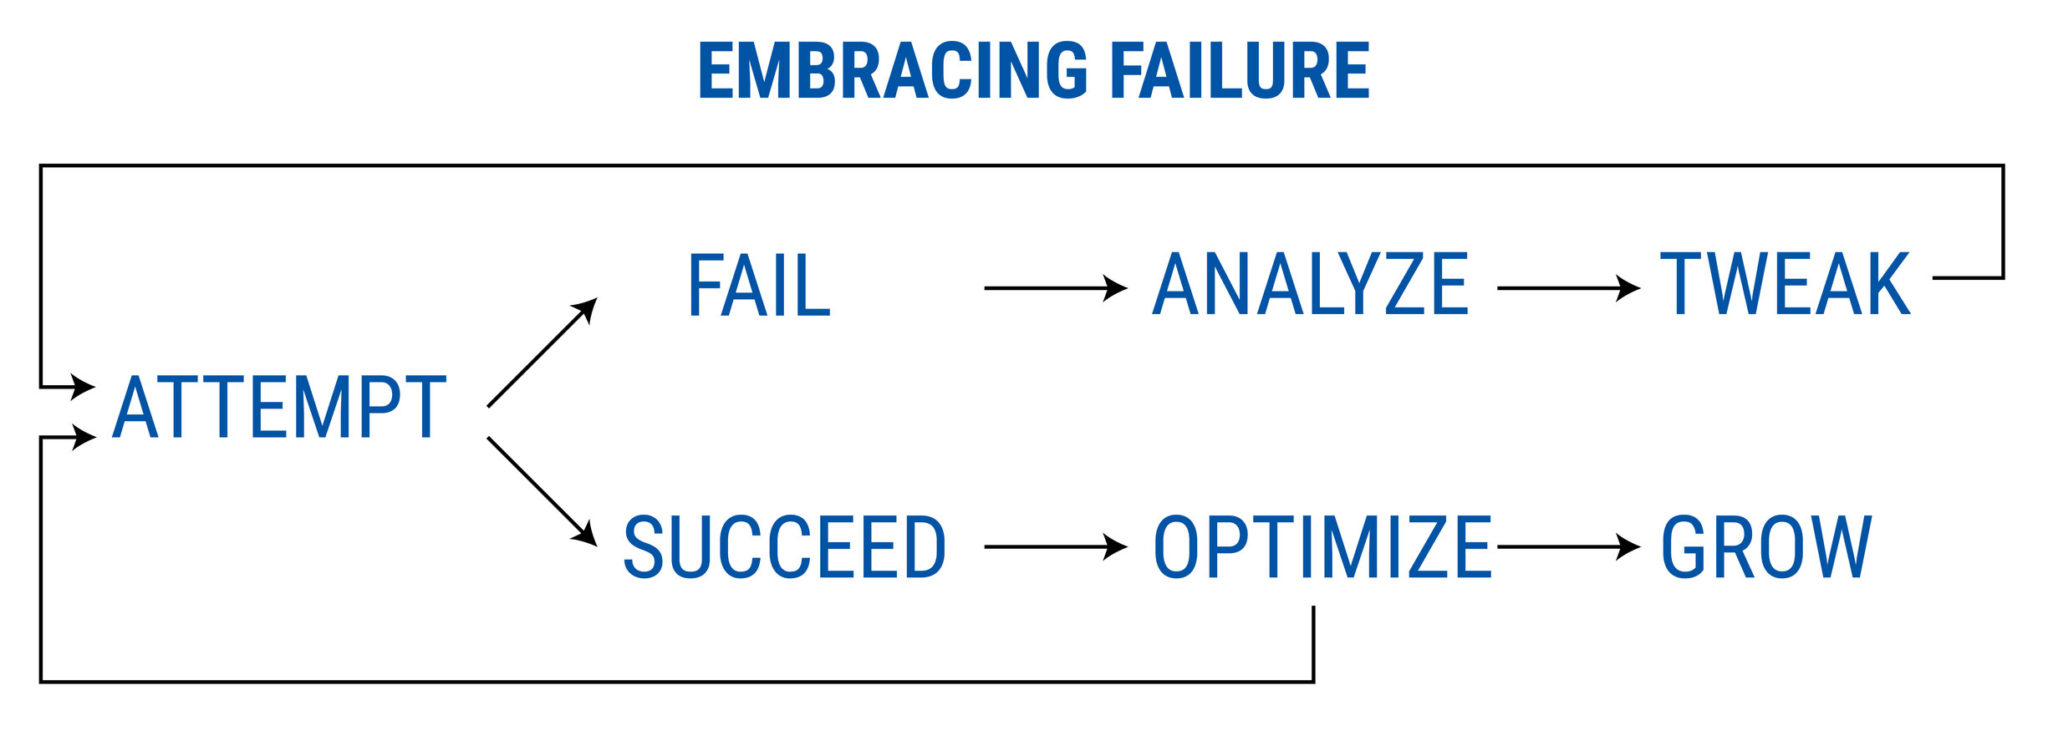 embracing failure - starting a coaching business while working full-time